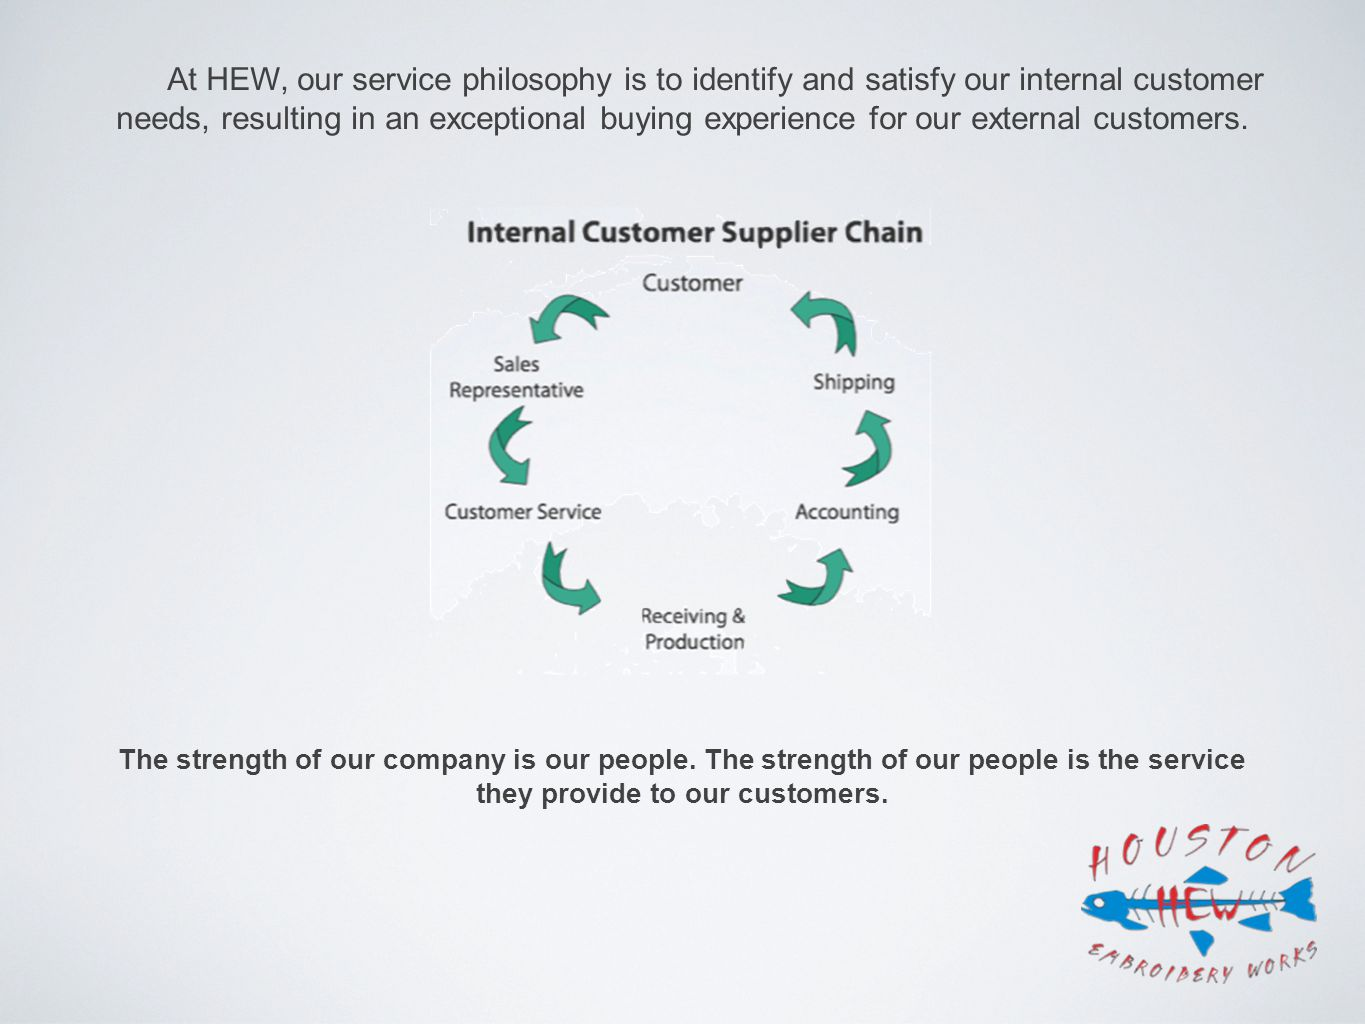 The strength of our company is our people. The strength of our people is the service they provide to our customers. At HEW, our service philosophy is